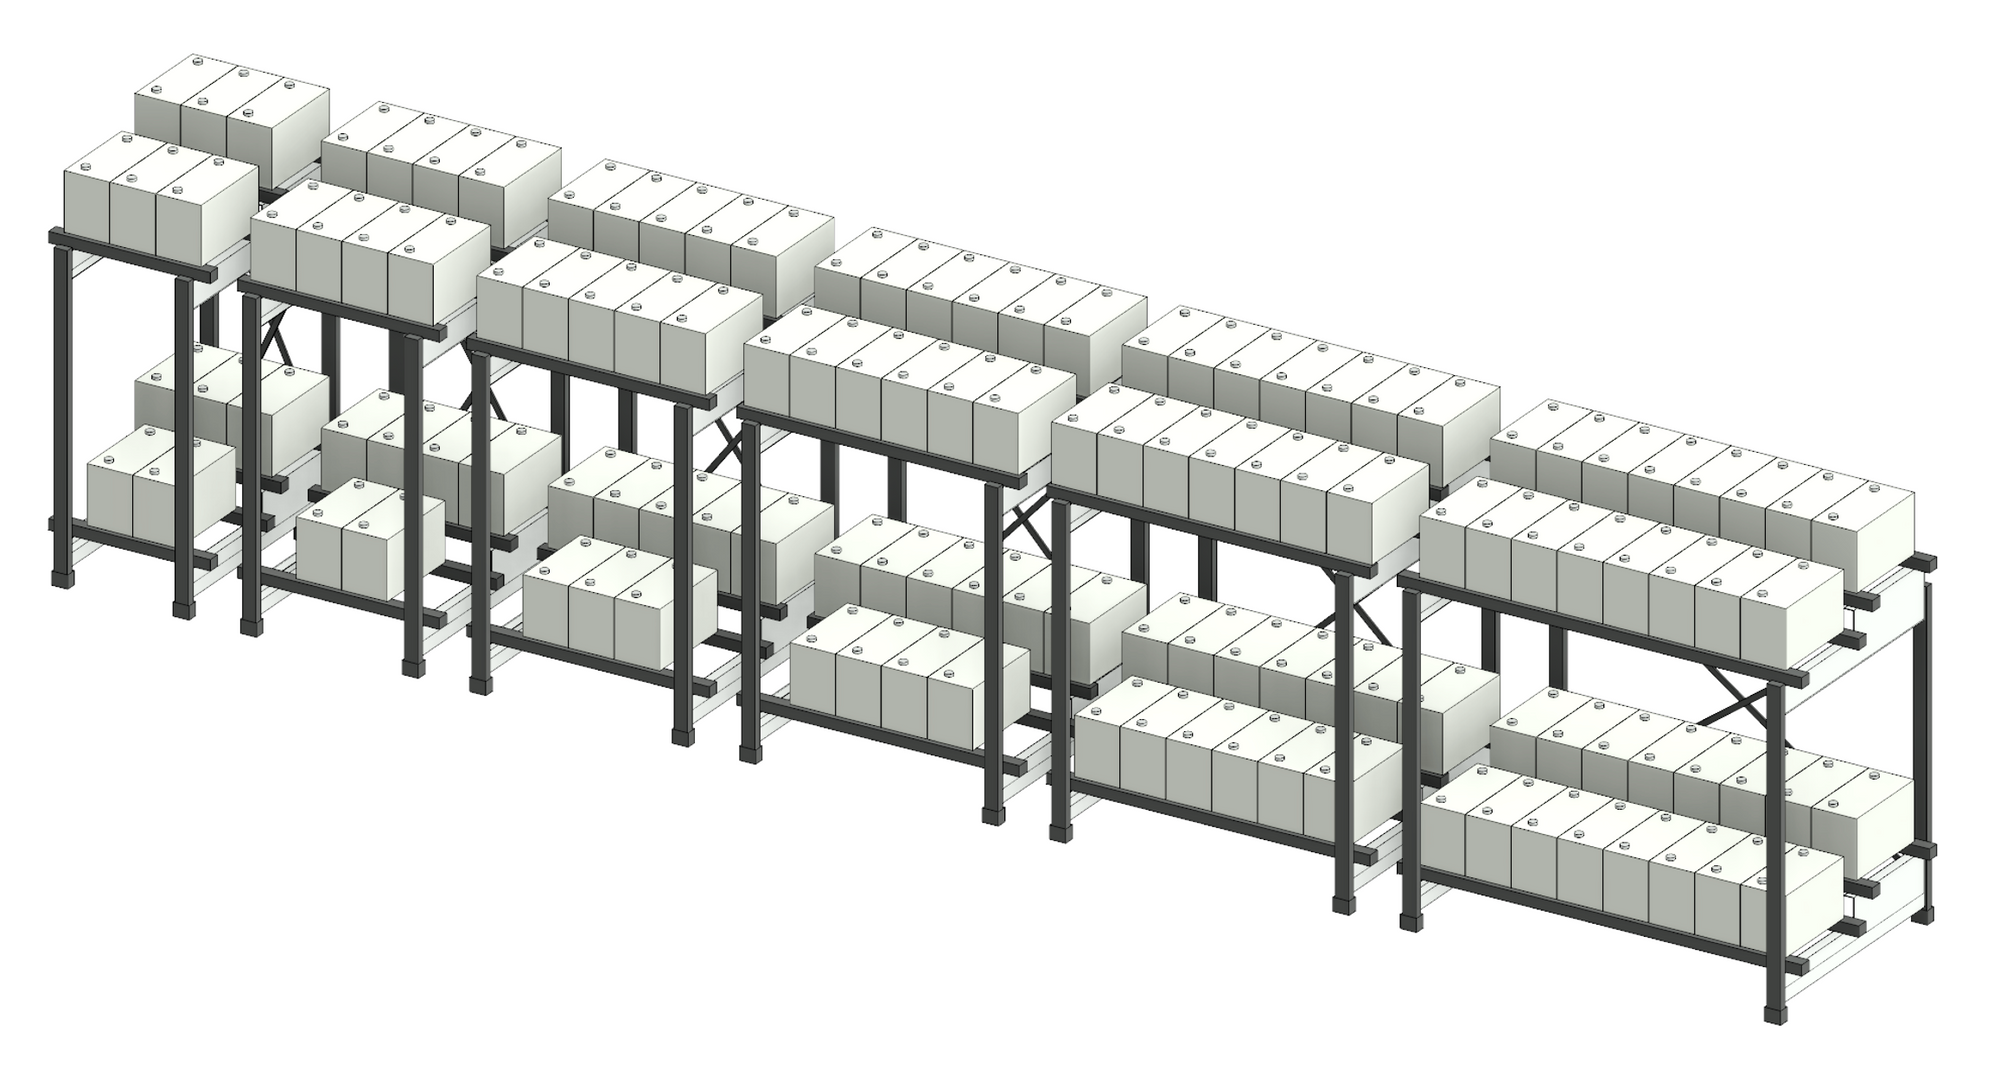 Revit 3D view showing some of the available types for the UPS battery rack.